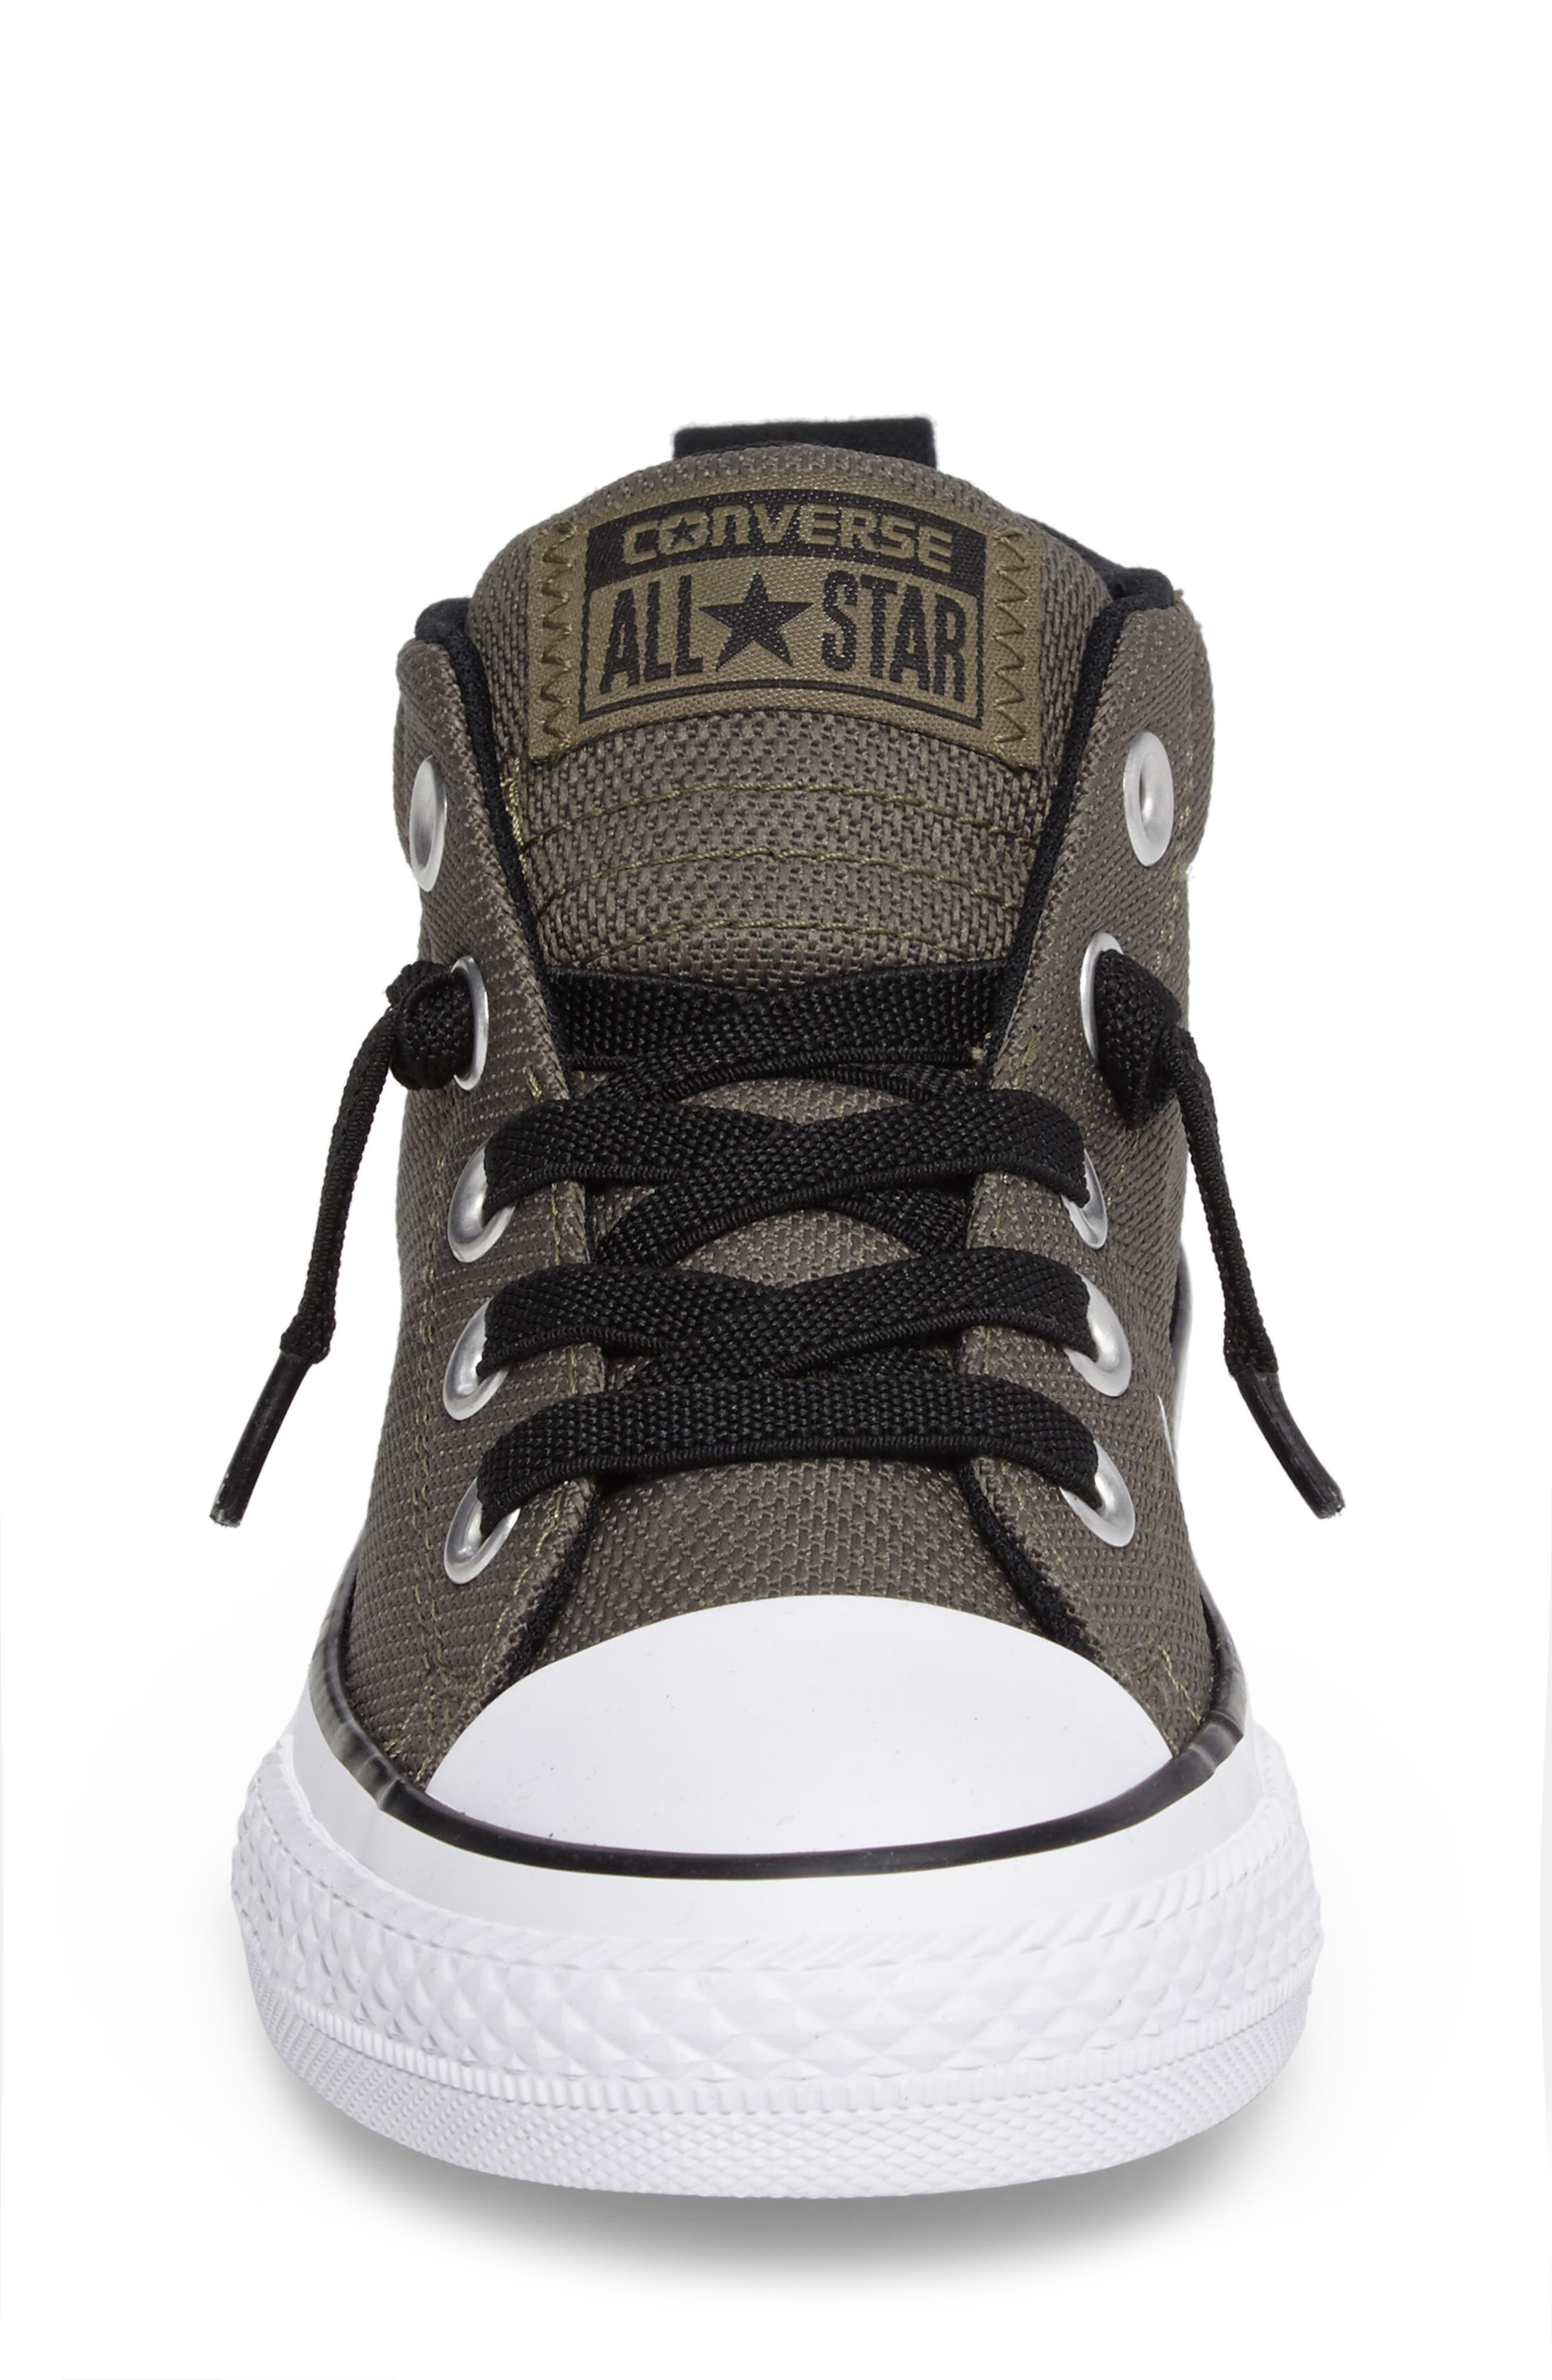 Chuck Taylor<sup>®</sup> All Star<sup>®</sup> Basket Weave Street Mid Sneaker,                             Alternate thumbnail 4, color,                             342